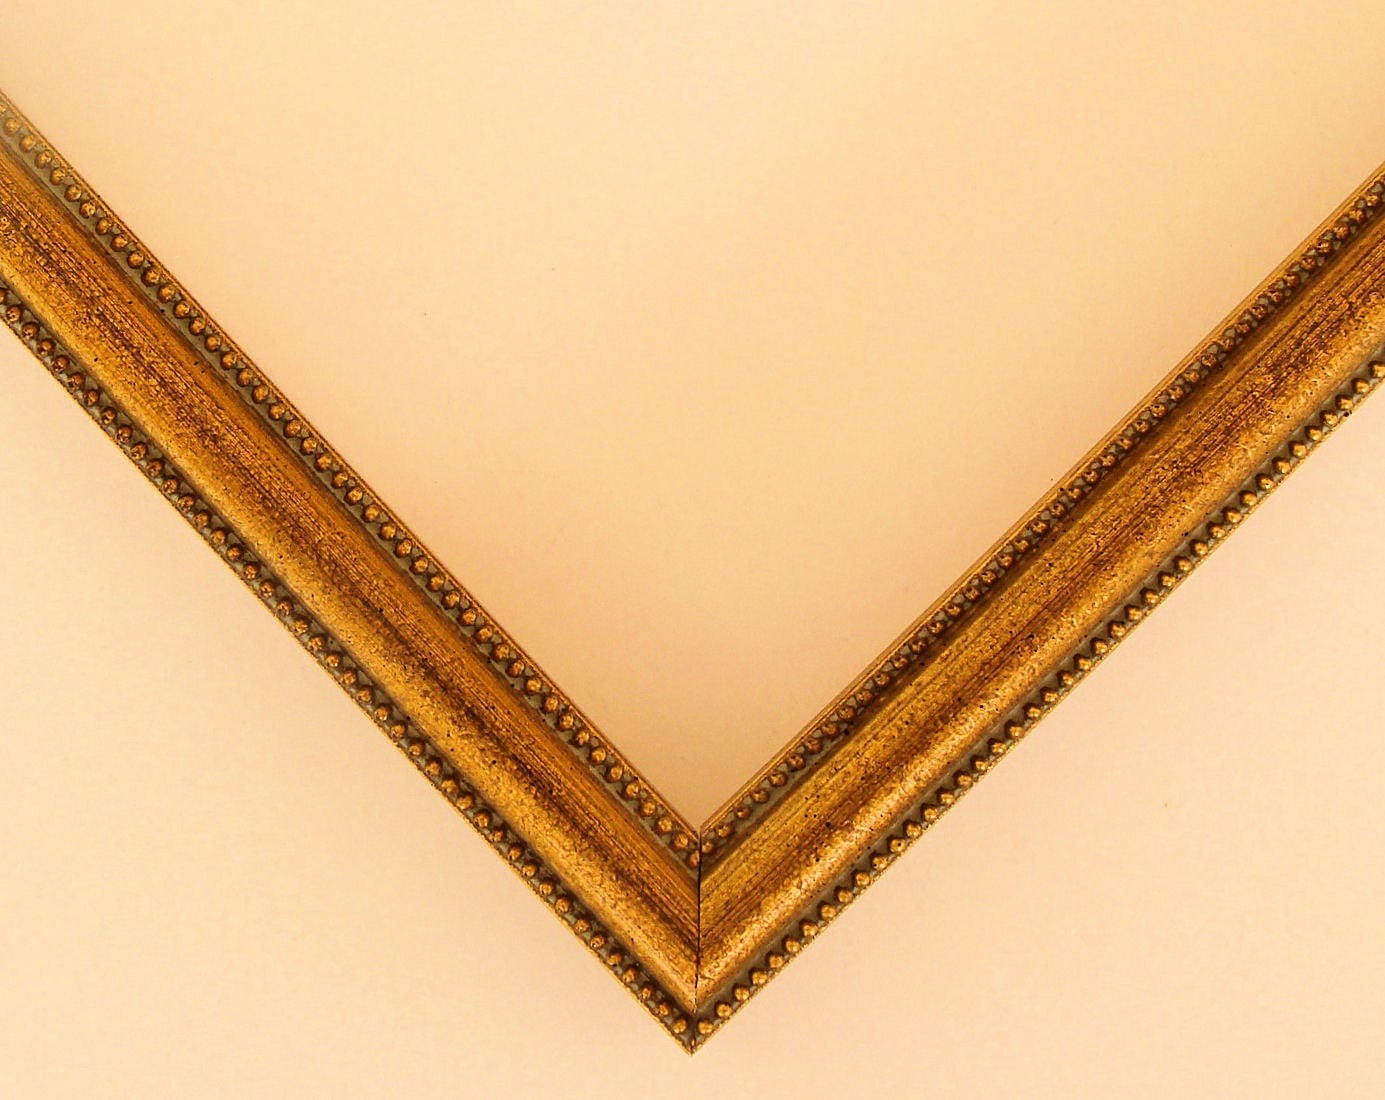 Gold Ornate Picture Frame For Art Print Or Photo Gold